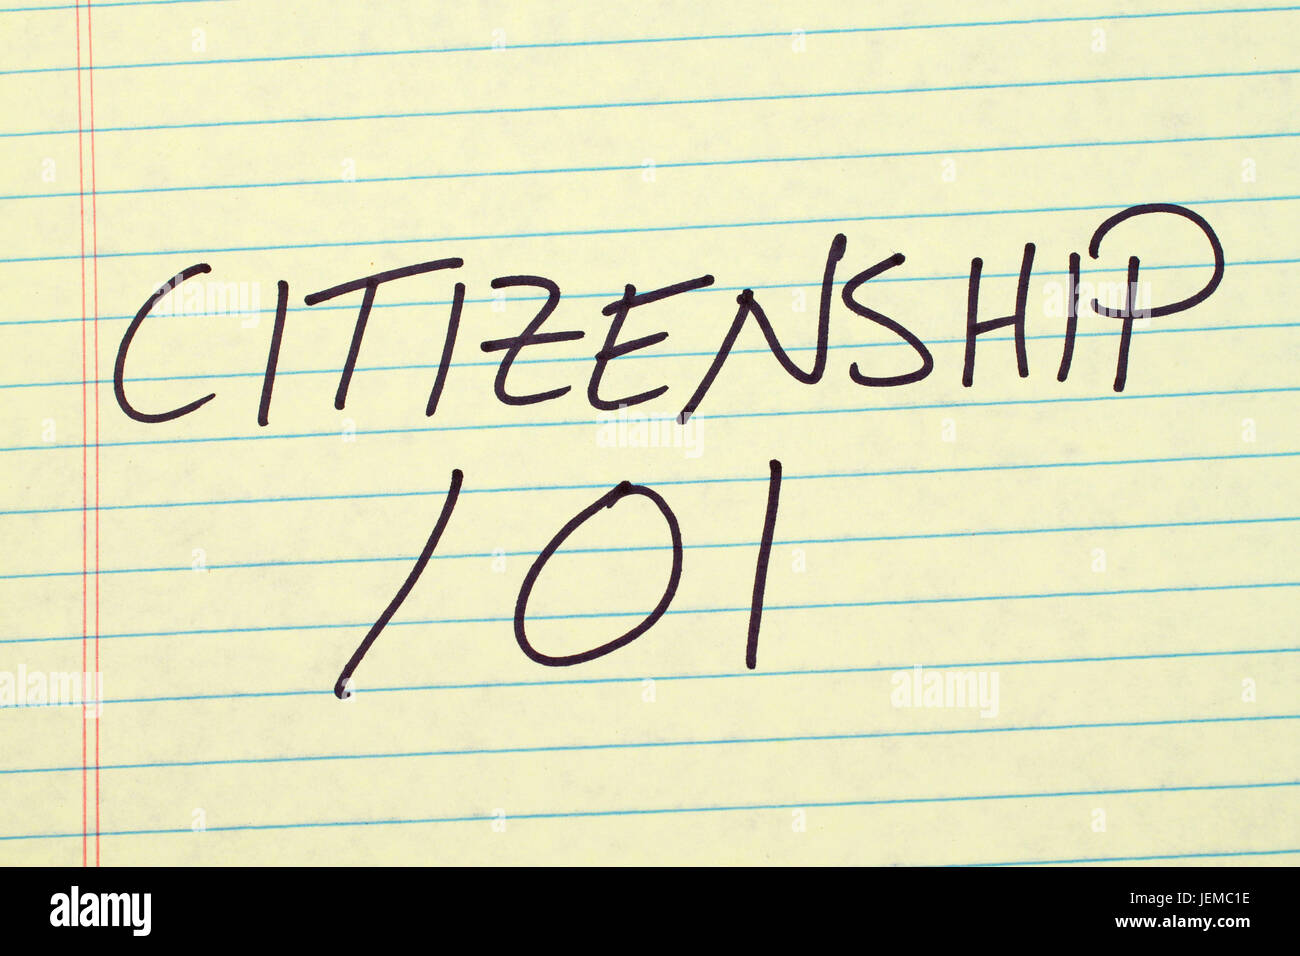 The words 'Citizenship 101' on a yellow legal pad - Stock Image